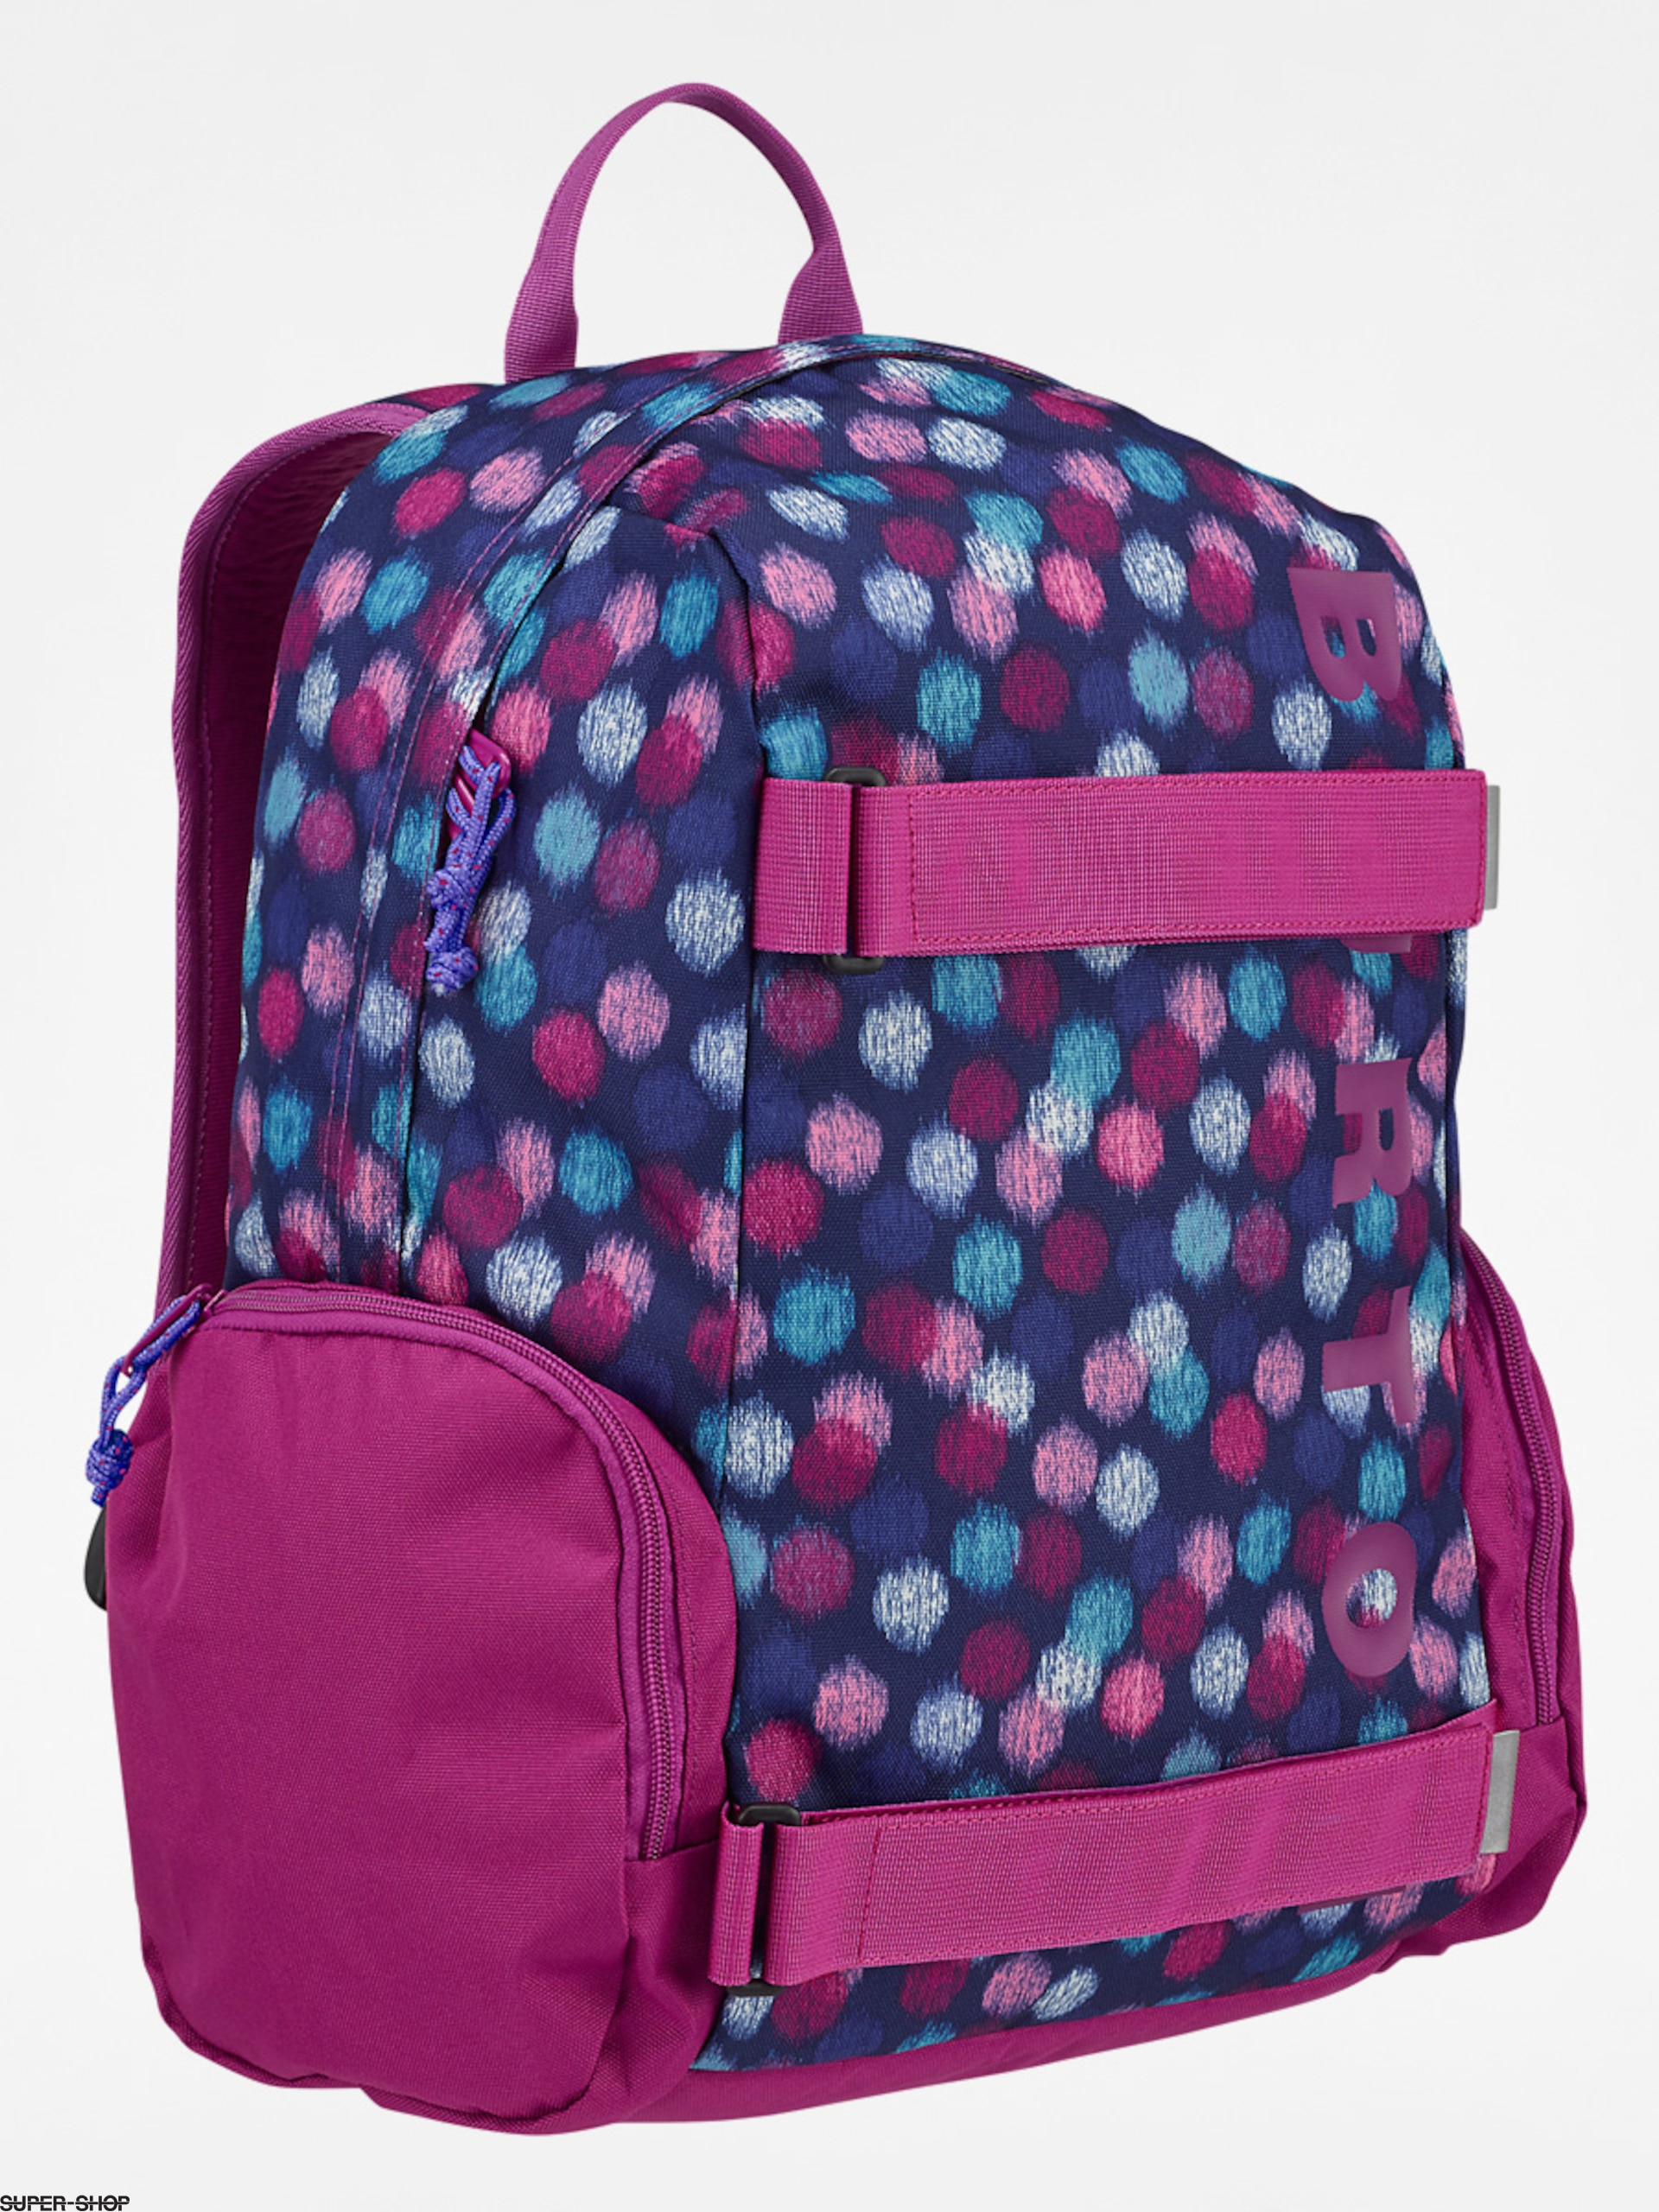 Burton Backpack Kids Emphasis (ikat dot print)